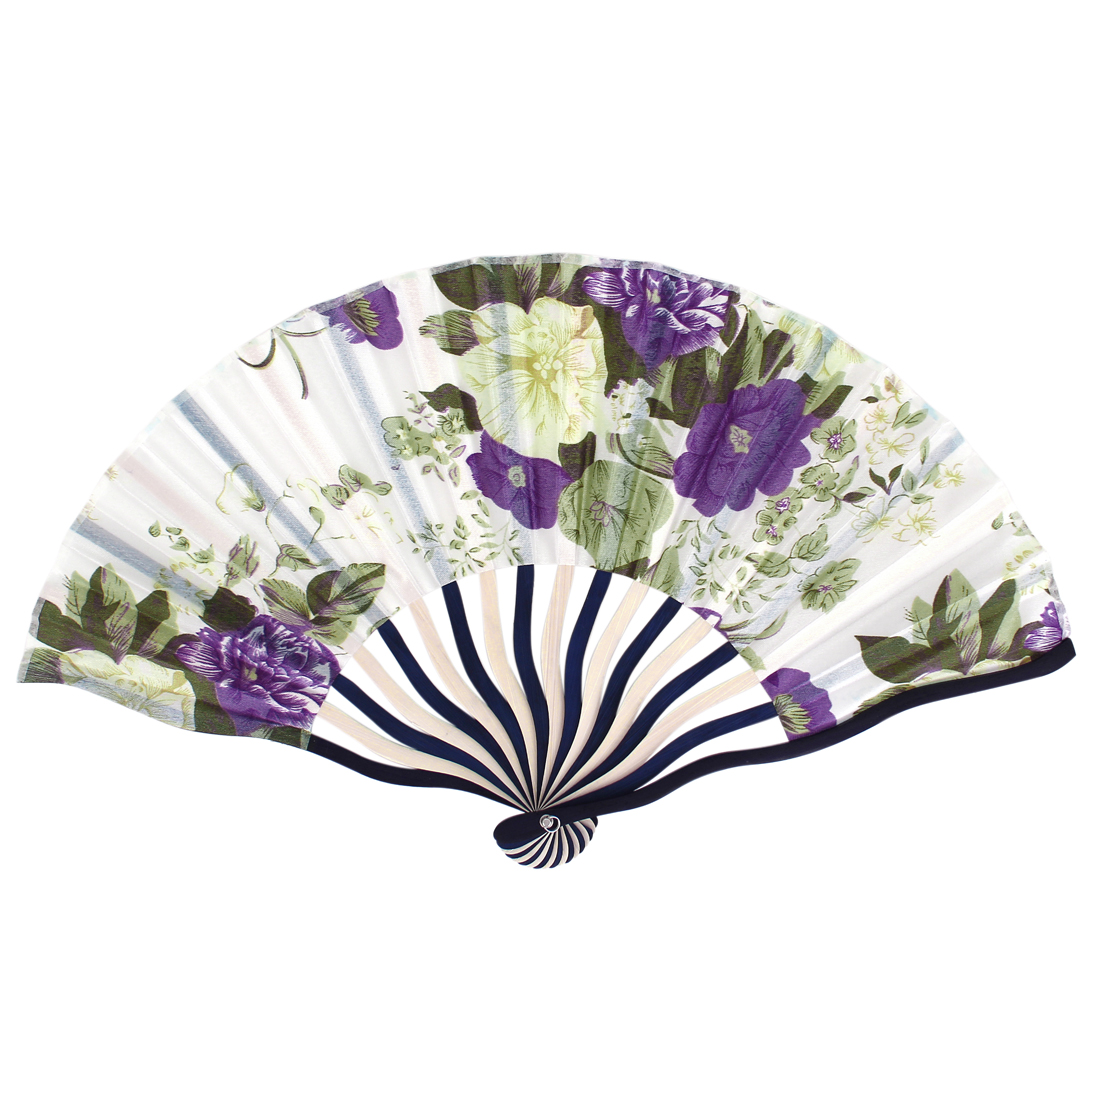 Chinese Tradition Blooming Peony Flower Print Fabric Cloth Ivory Blue Bamboo Frame Handheld Foldable Hand Fan